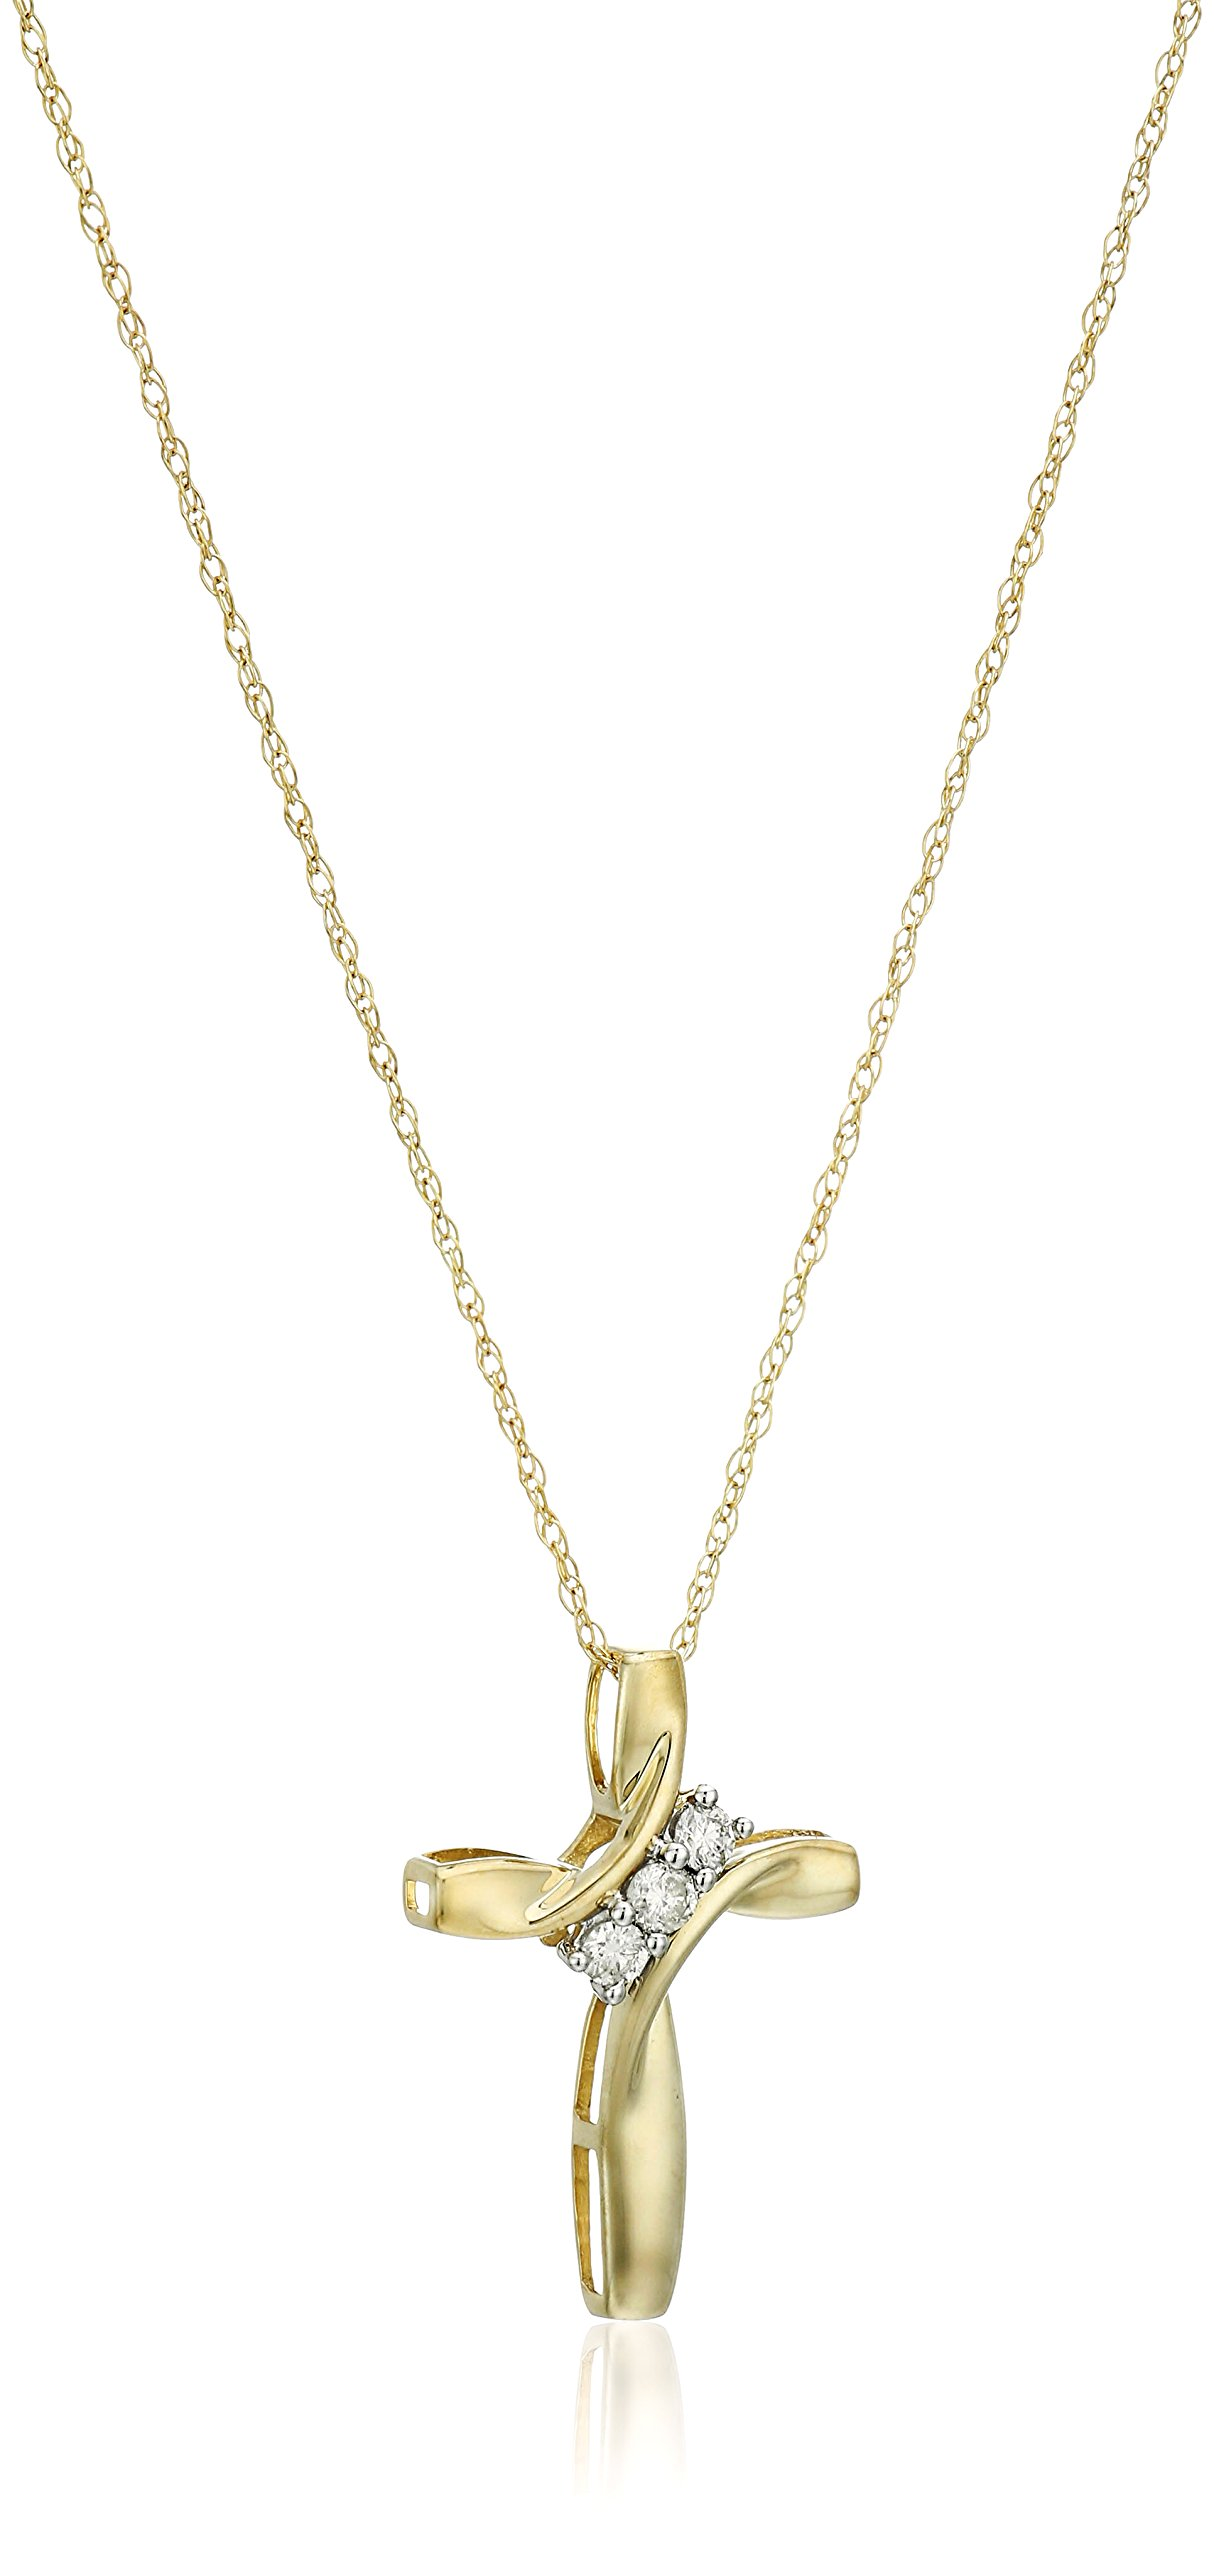 10k Yellow Gold Three-Diamond Cross Pendant Necklace (1/10 cttw, I-J Color, I2-I3 Clarity), 18'' by Amazon Collection (Image #1)